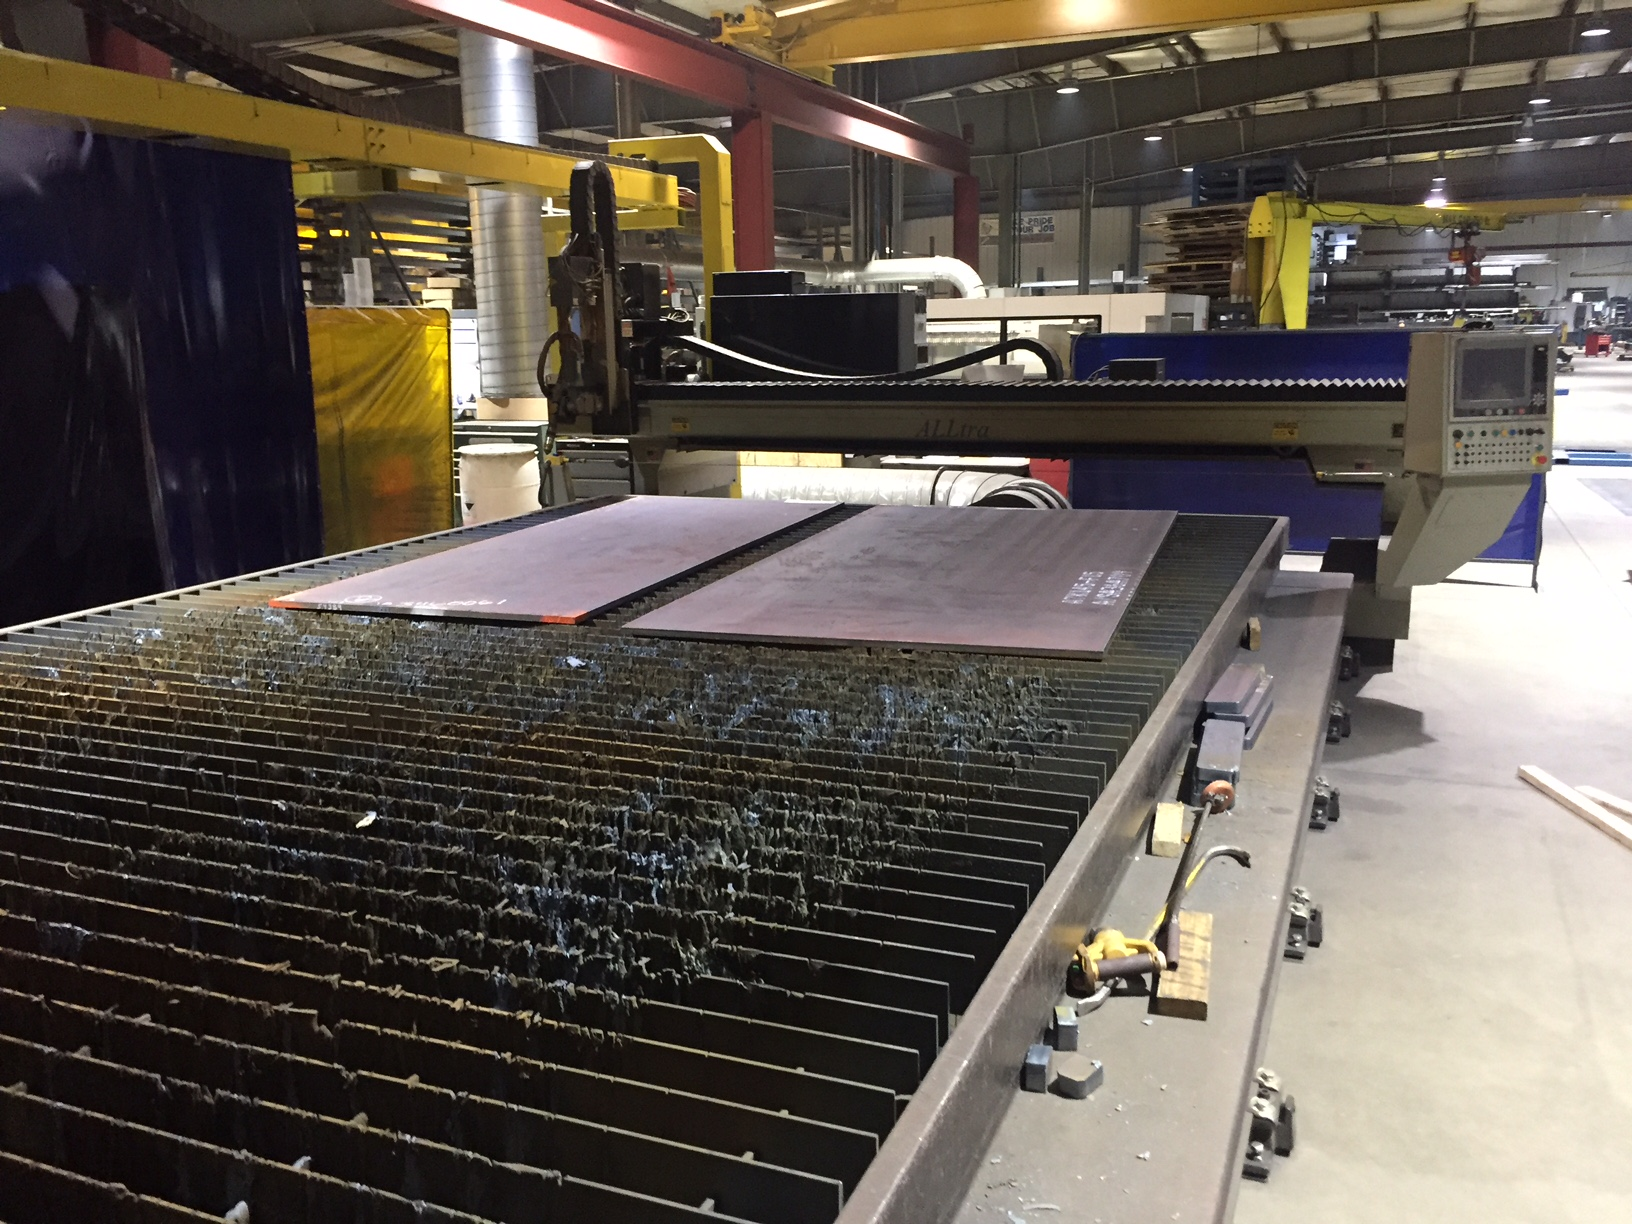 "Alltra PG14-12 Plasma Cutting, 12' x 21'6"", 2 Plates, HPR400XD Autogas HyPrecision, Burny 10 CNC Control, Height Control, Heat Shield, and more!"